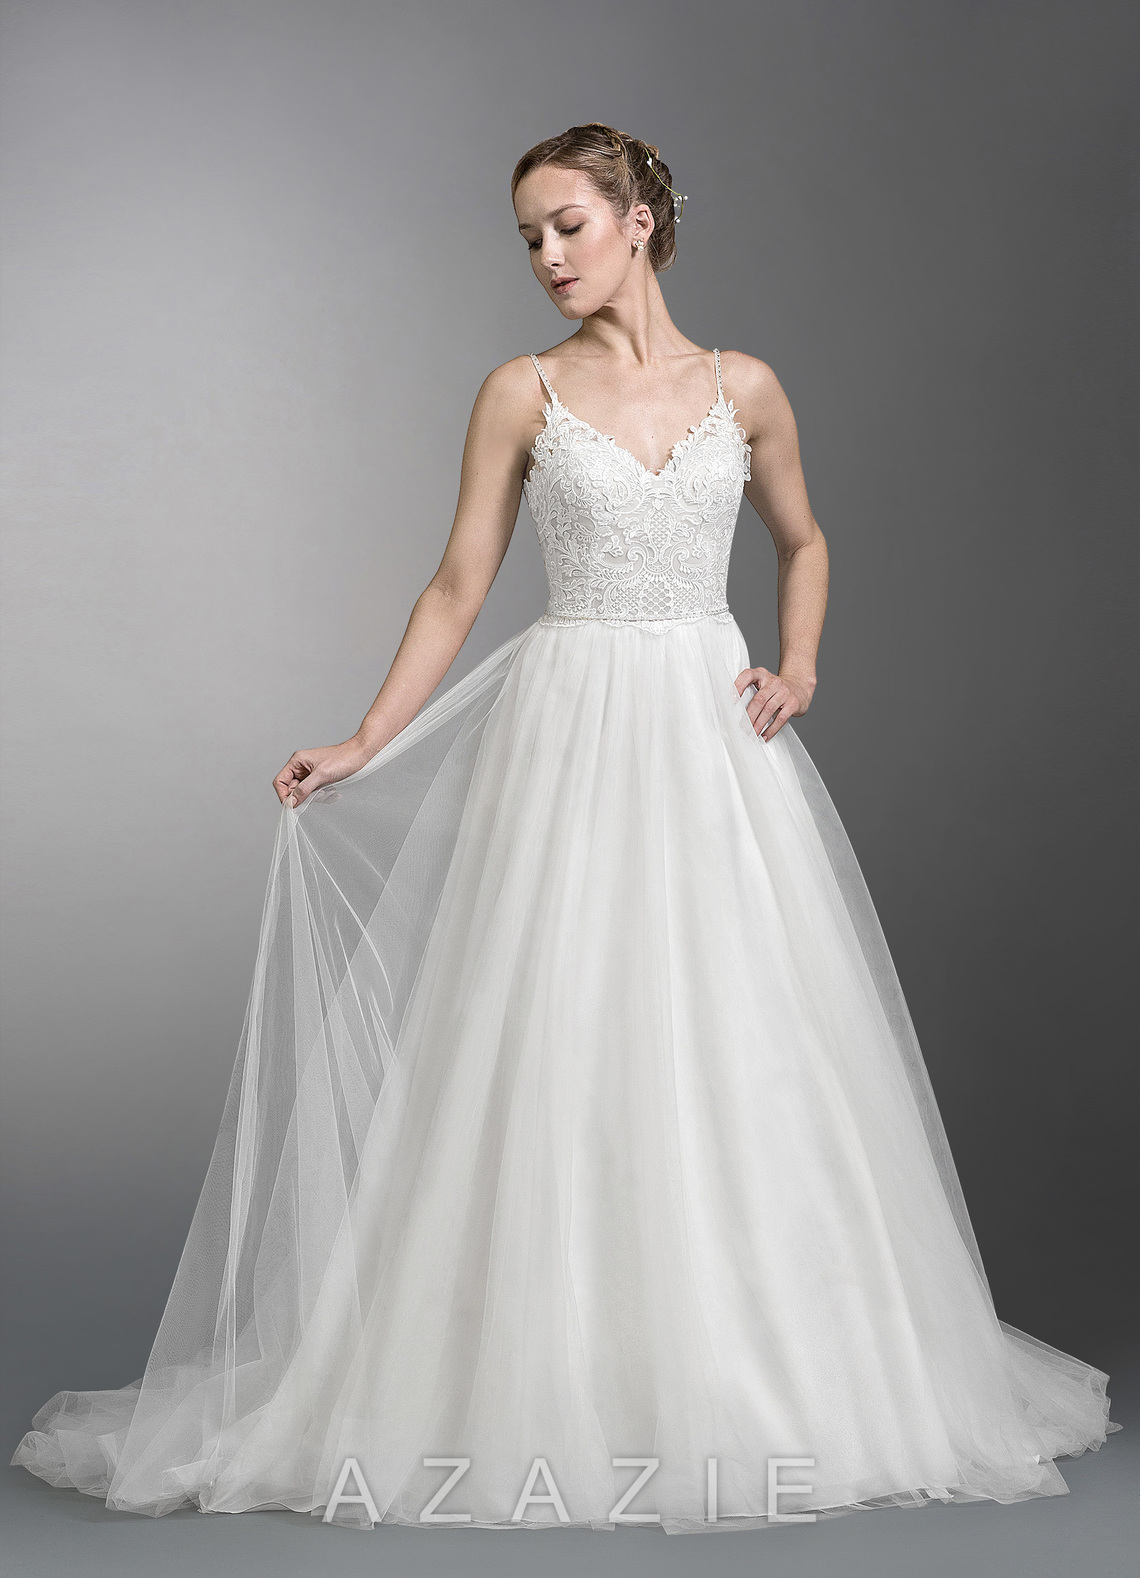 bc5e2e3036 Azazie Venus BG Wedding Dress